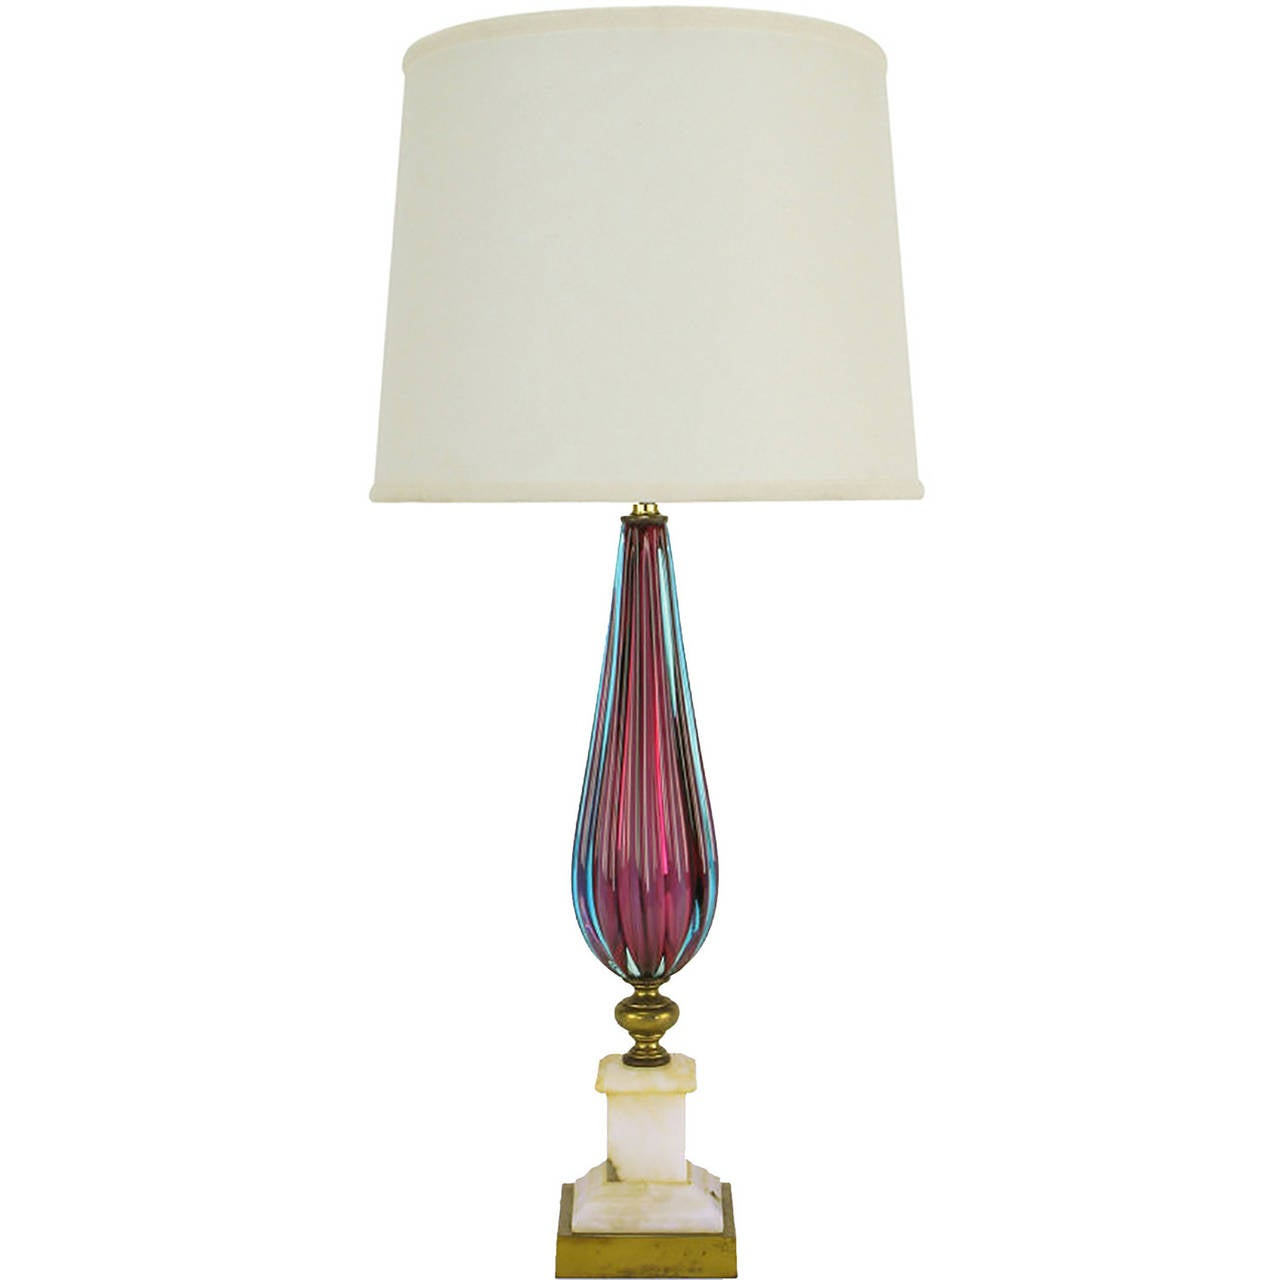 murano glass table lamp with carrera marble base for sale at 1stdibs. Black Bedroom Furniture Sets. Home Design Ideas